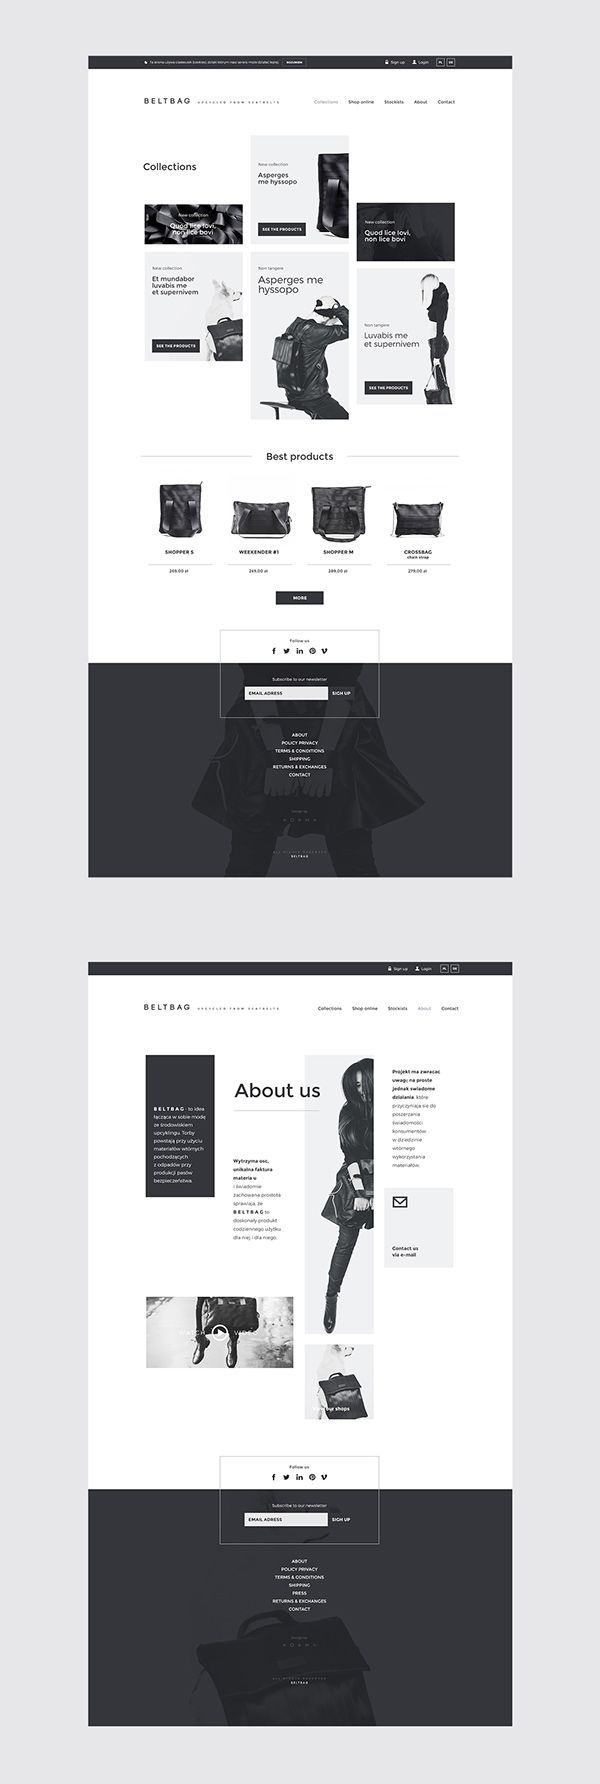 Beltbag Website on Web Design Served